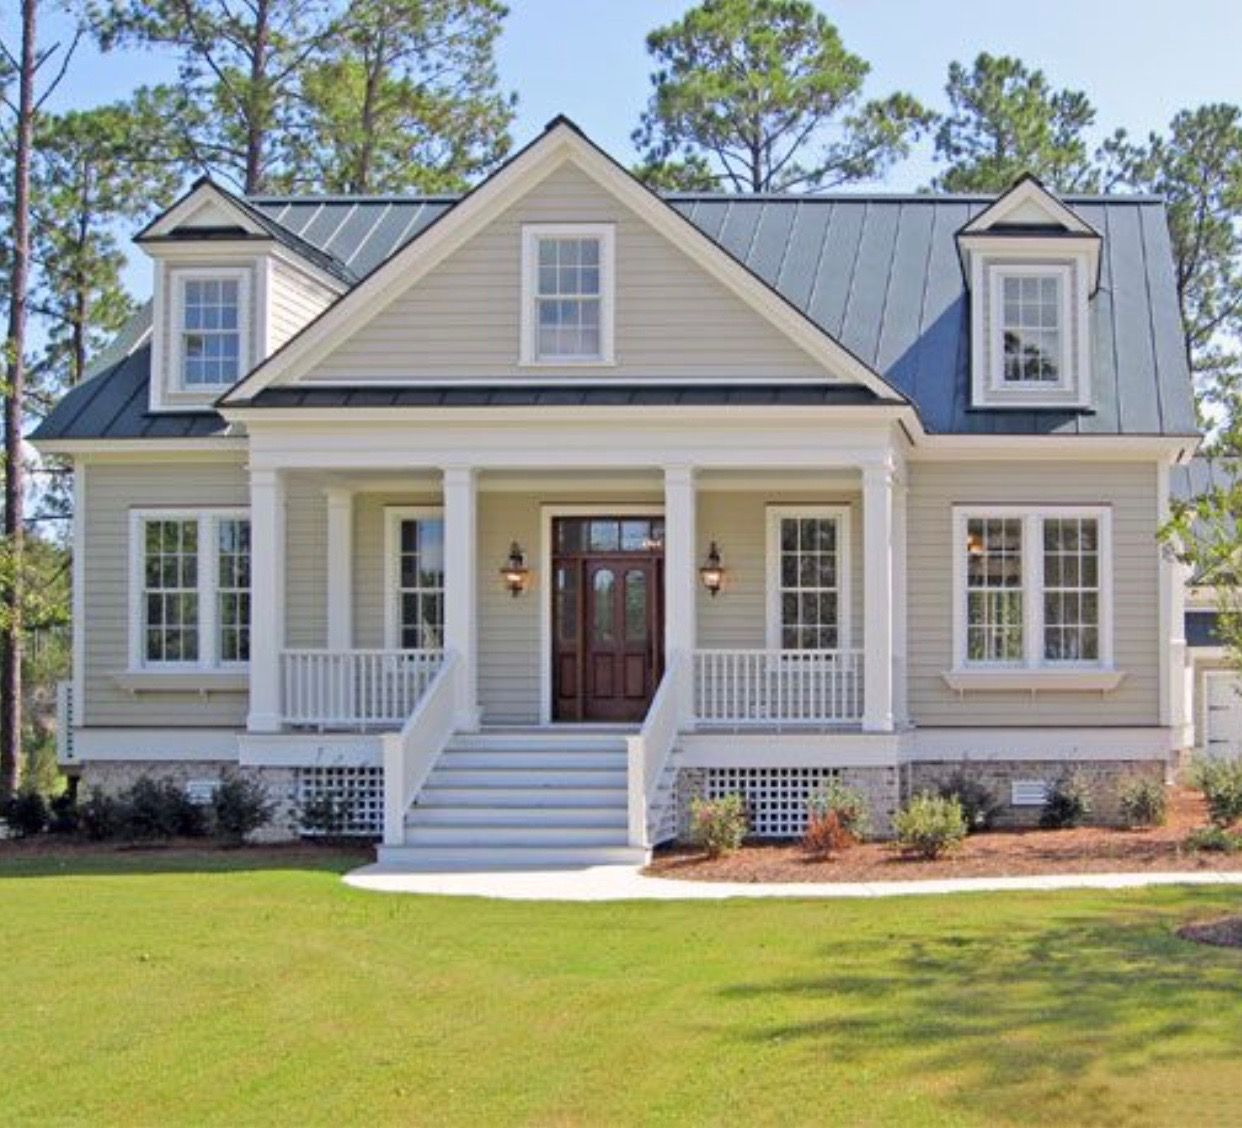 Beautiful House with Gable Roof | Dream Home | Small ... on farmhouse designs from the 1900s, contemporary exterior design, rustic exterior design, shed exterior design, office exterior design, transitional exterior design, lodge exterior design, italianate exterior design, modern colonial exterior design, victorian exterior design, studio exterior design, garden exterior design, warehouse exterior design, barn exterior design, traditional exterior design, tri level exterior design, southwestern exterior design, garrison exterior design, mid-century exterior design, houses exterior design,